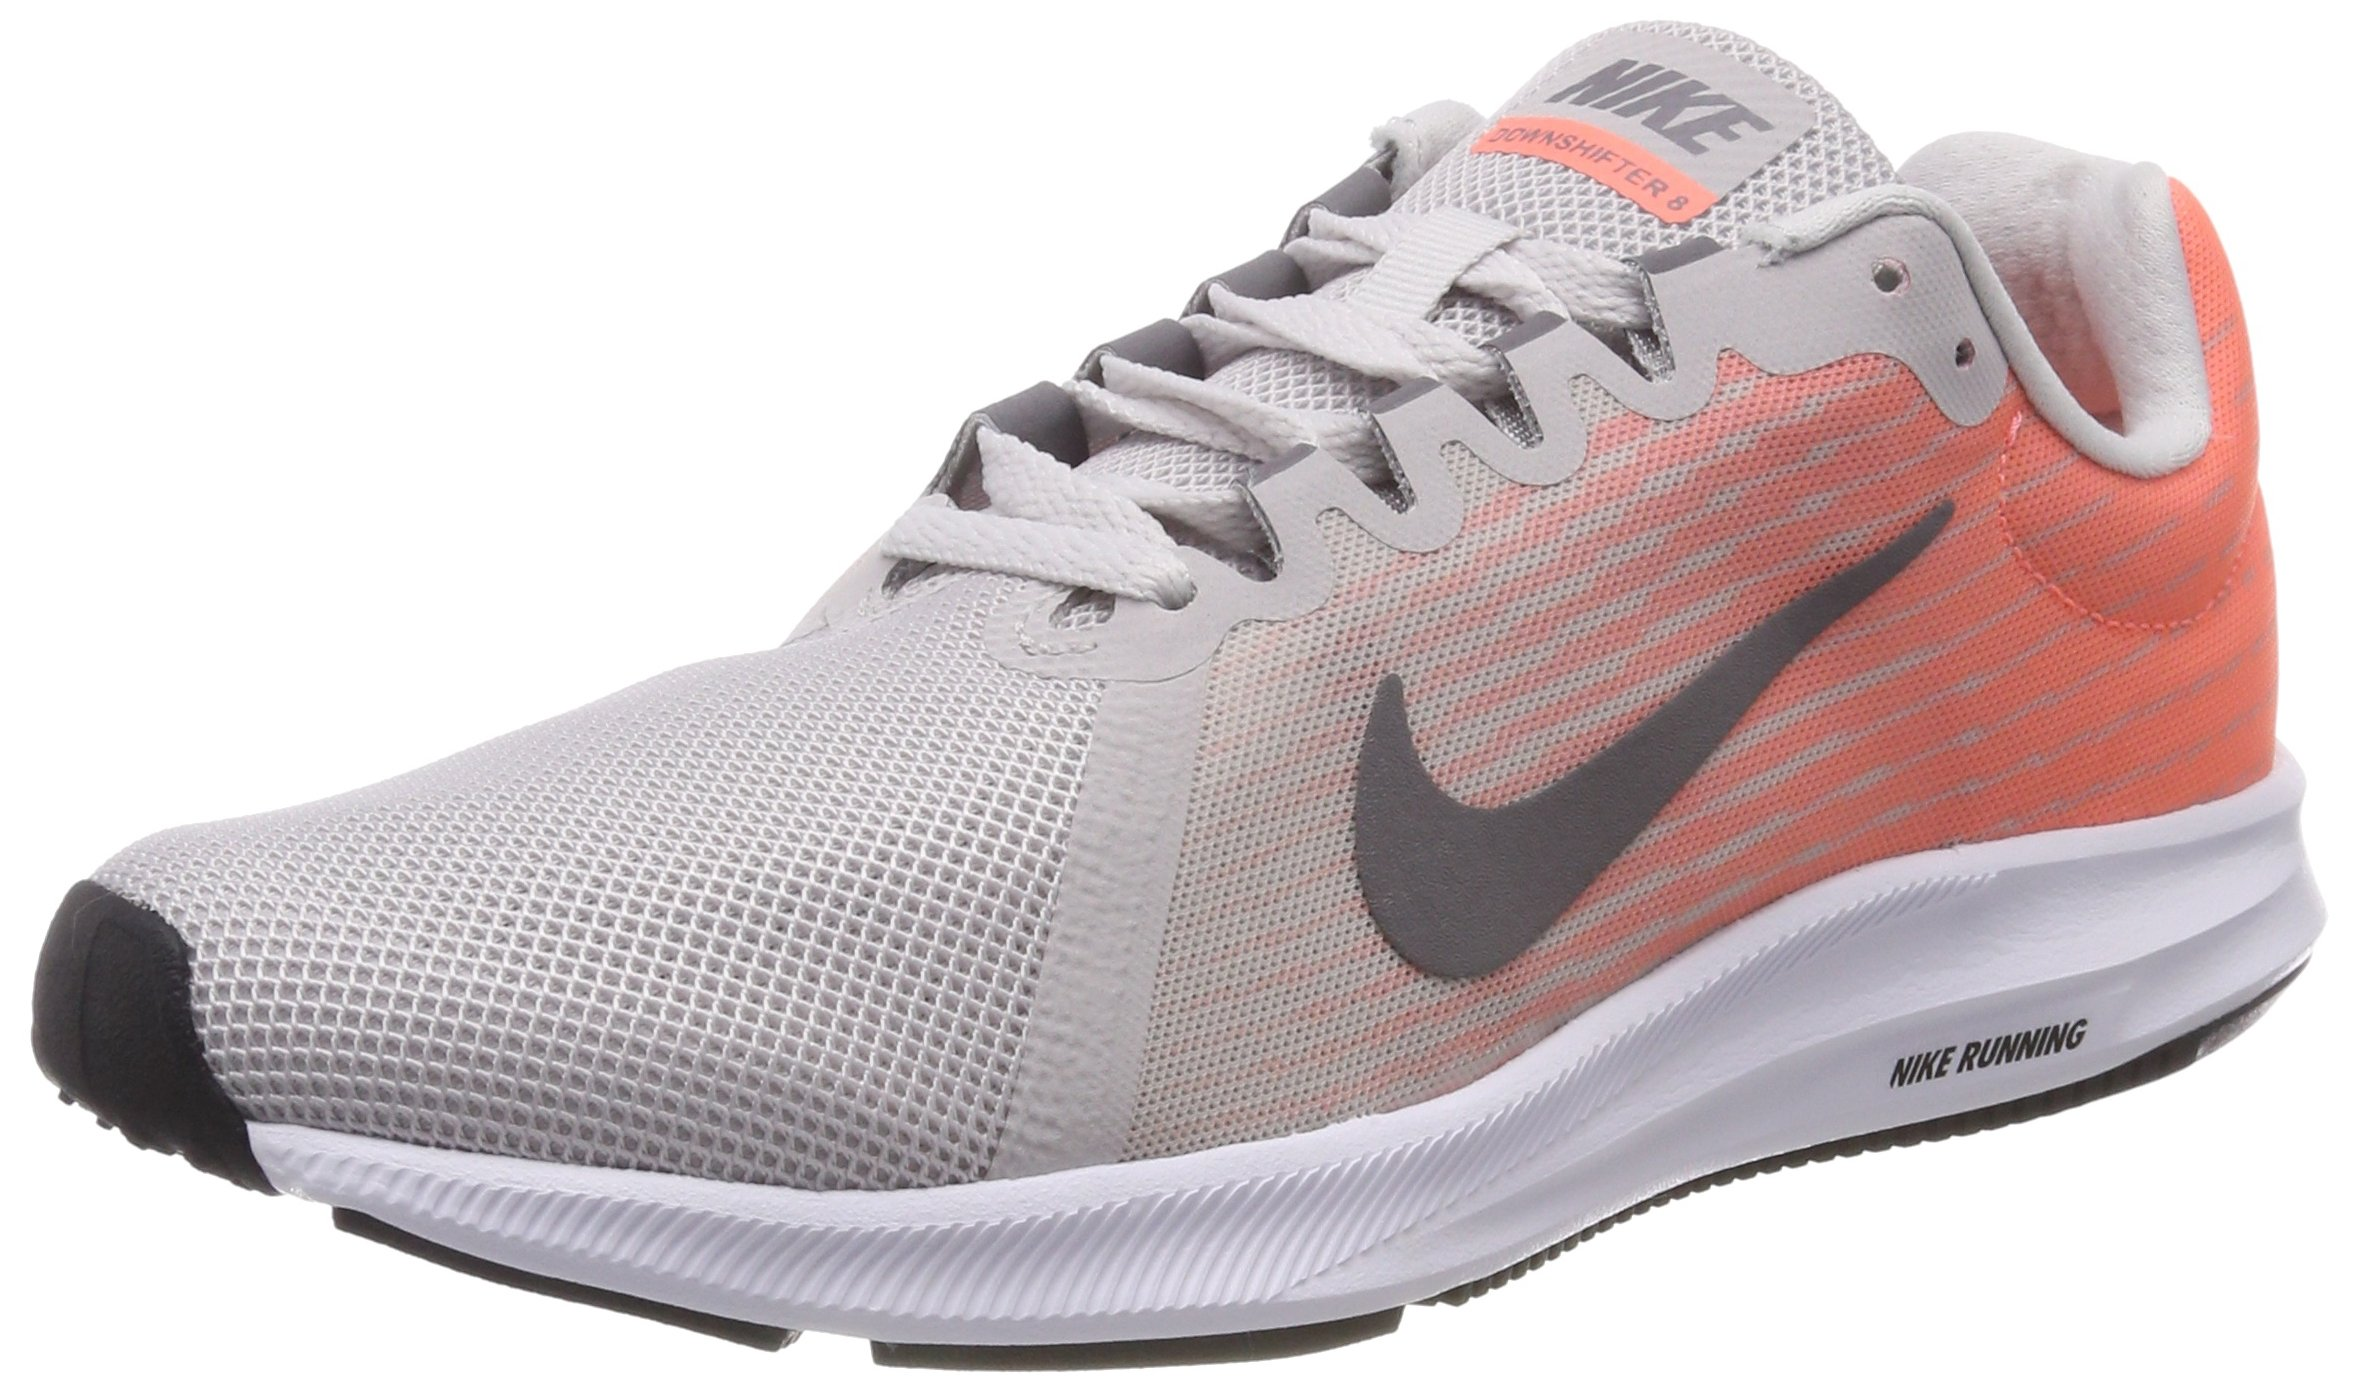 9845008728bd0 Galleon - Nike Women s Downshifter 8